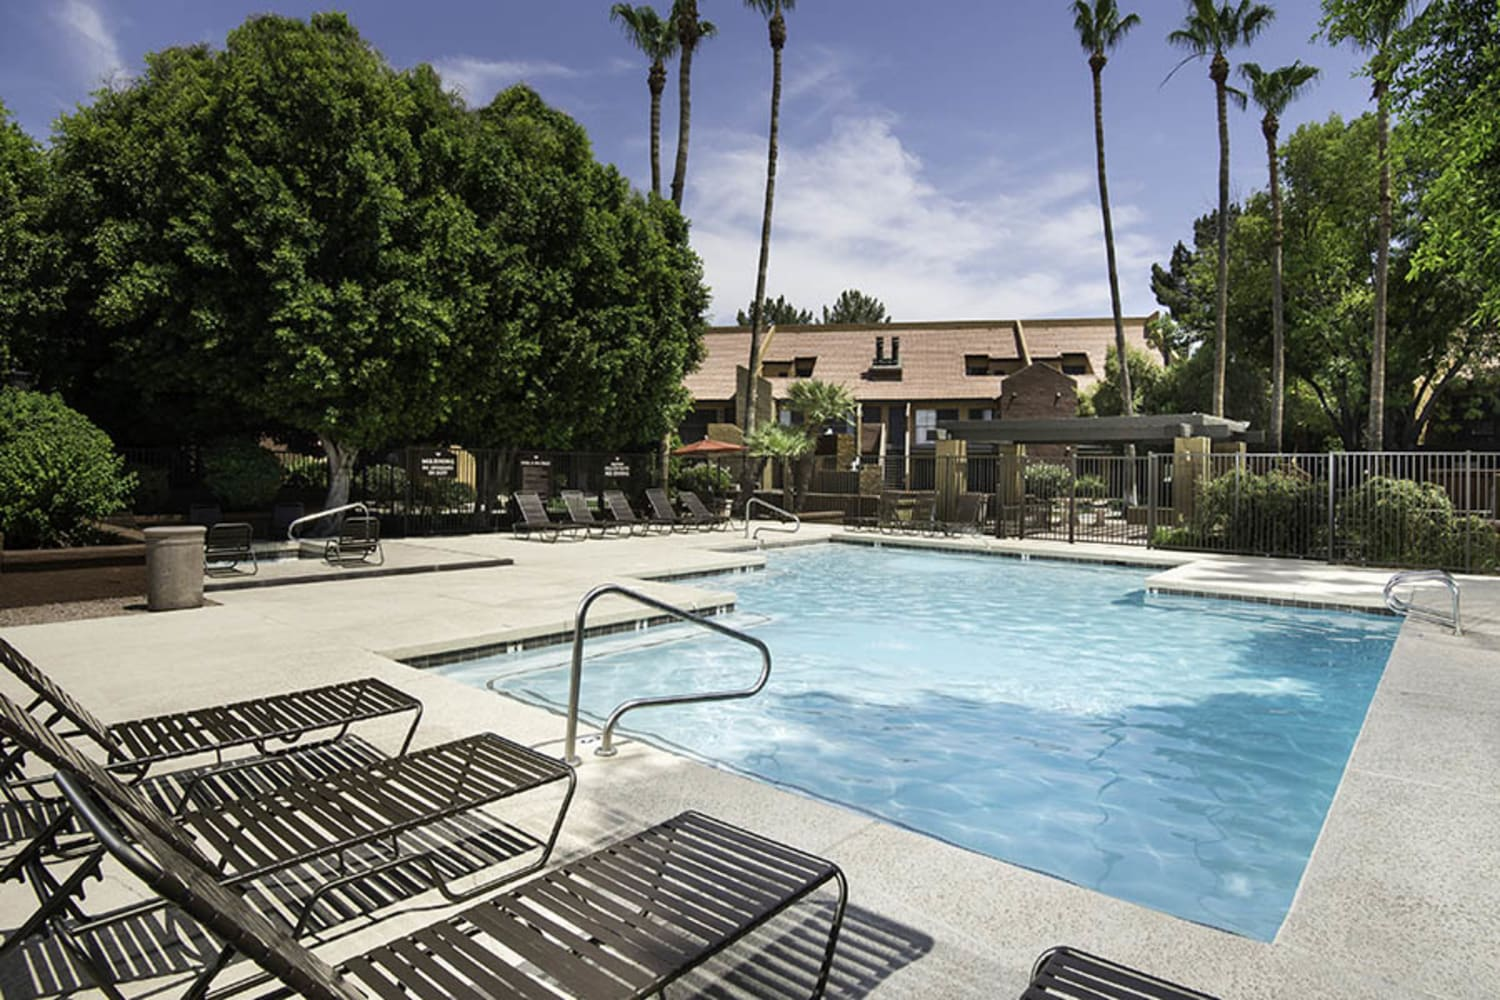 Enjoy a swimming pool at Waterford Place Apartments in Mesa, Arizona